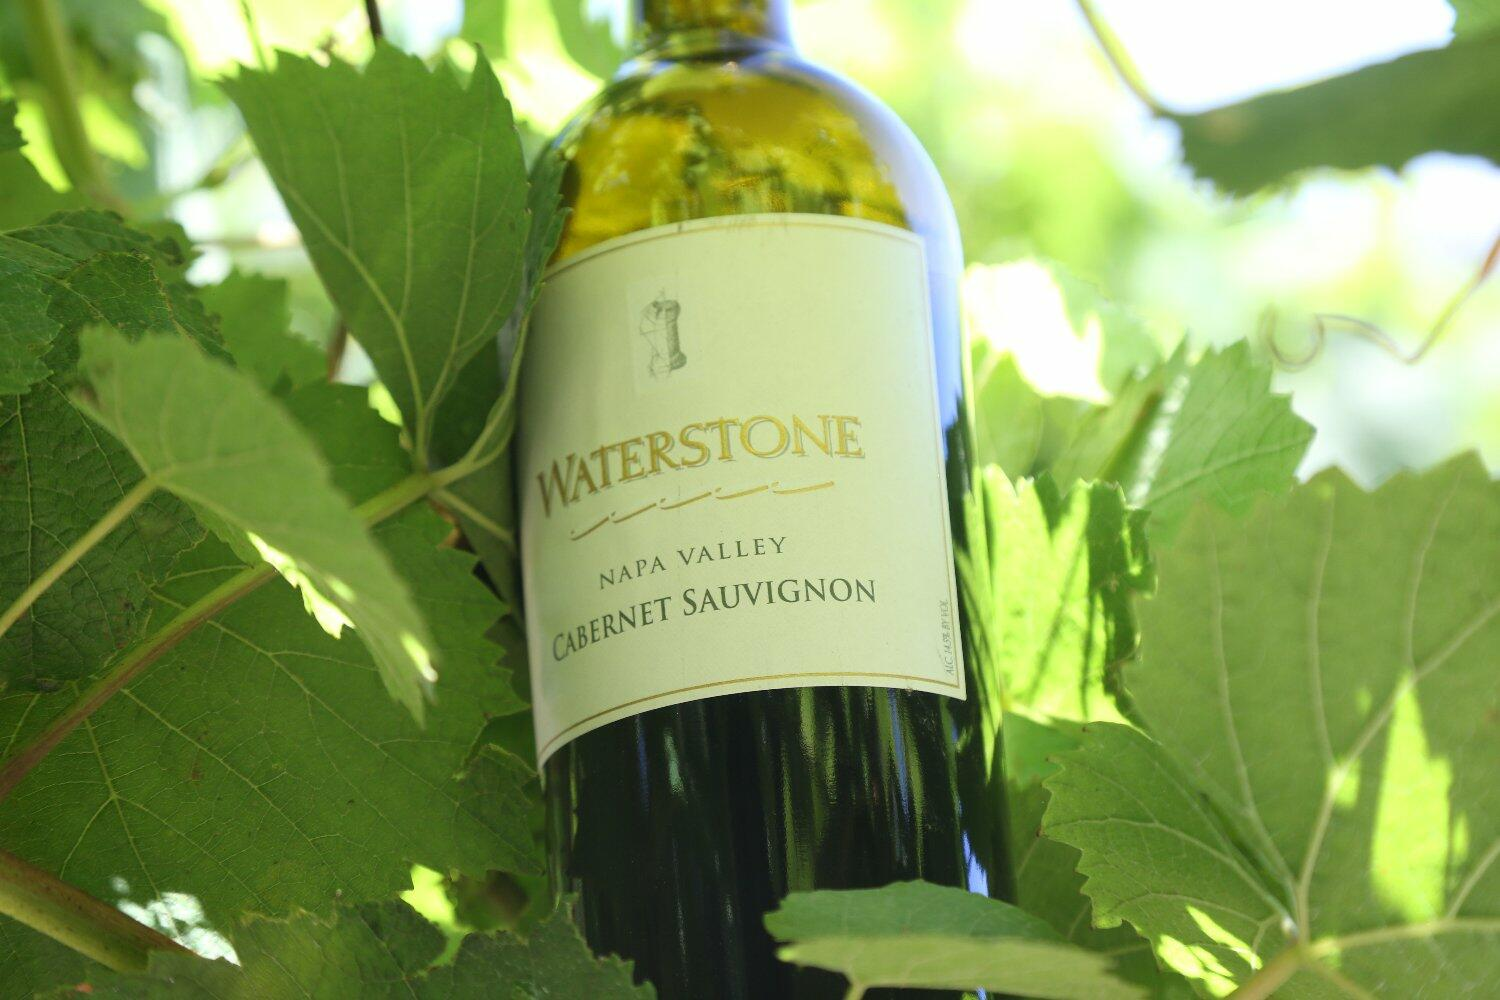 Waterstone Winery Cover Image